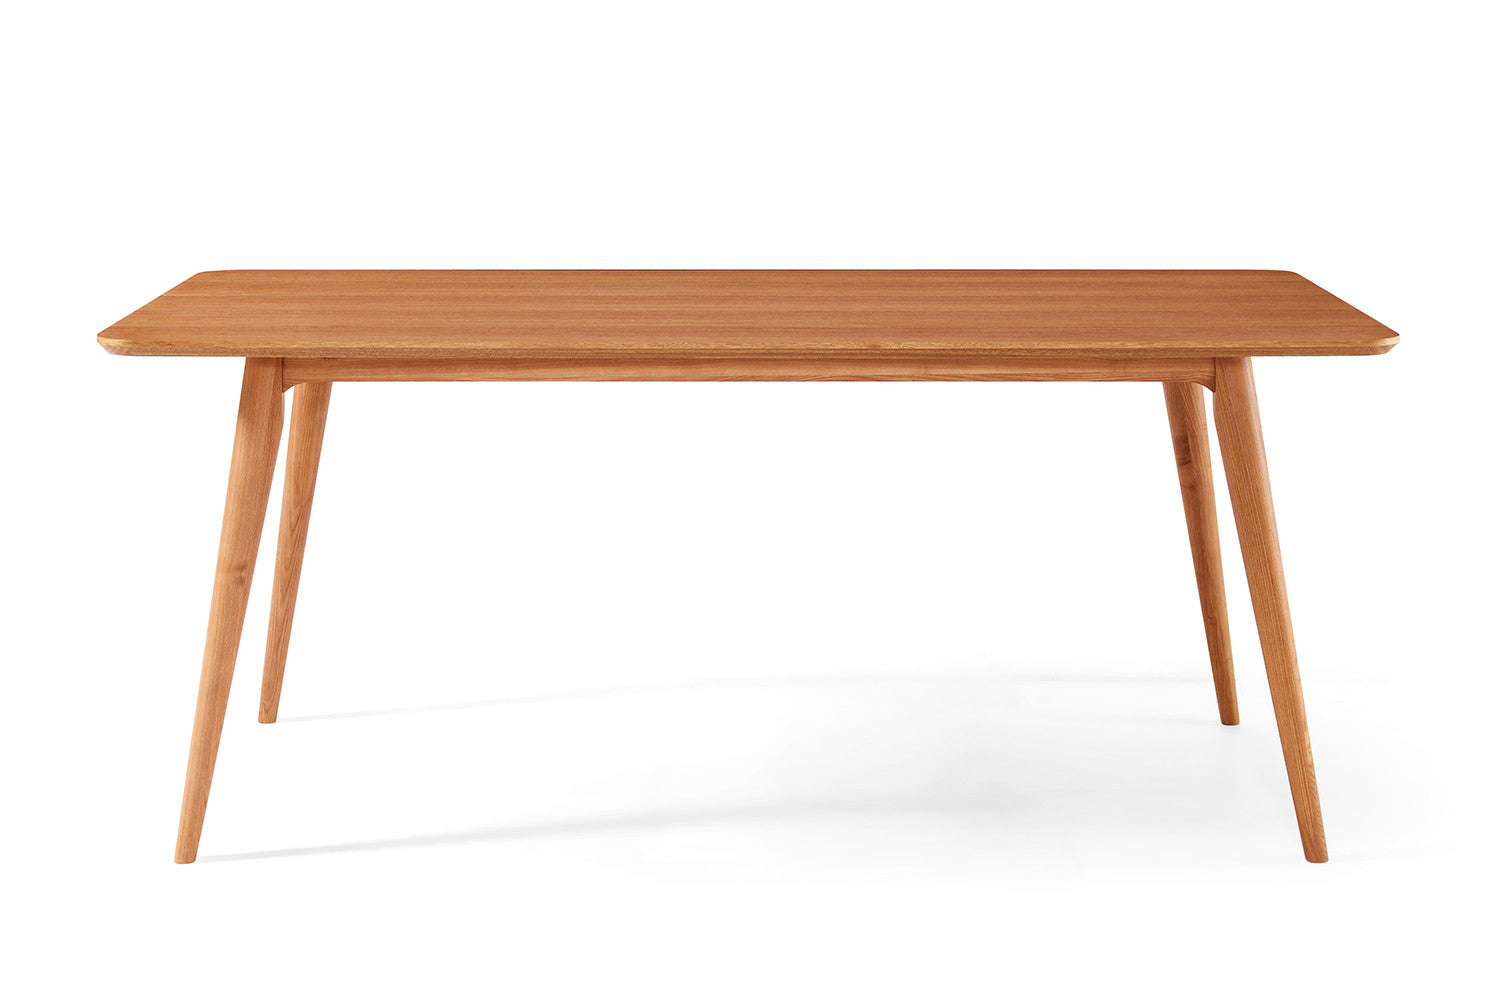 Table de salle manger design en bois julia dewarens for Table scandinave bois